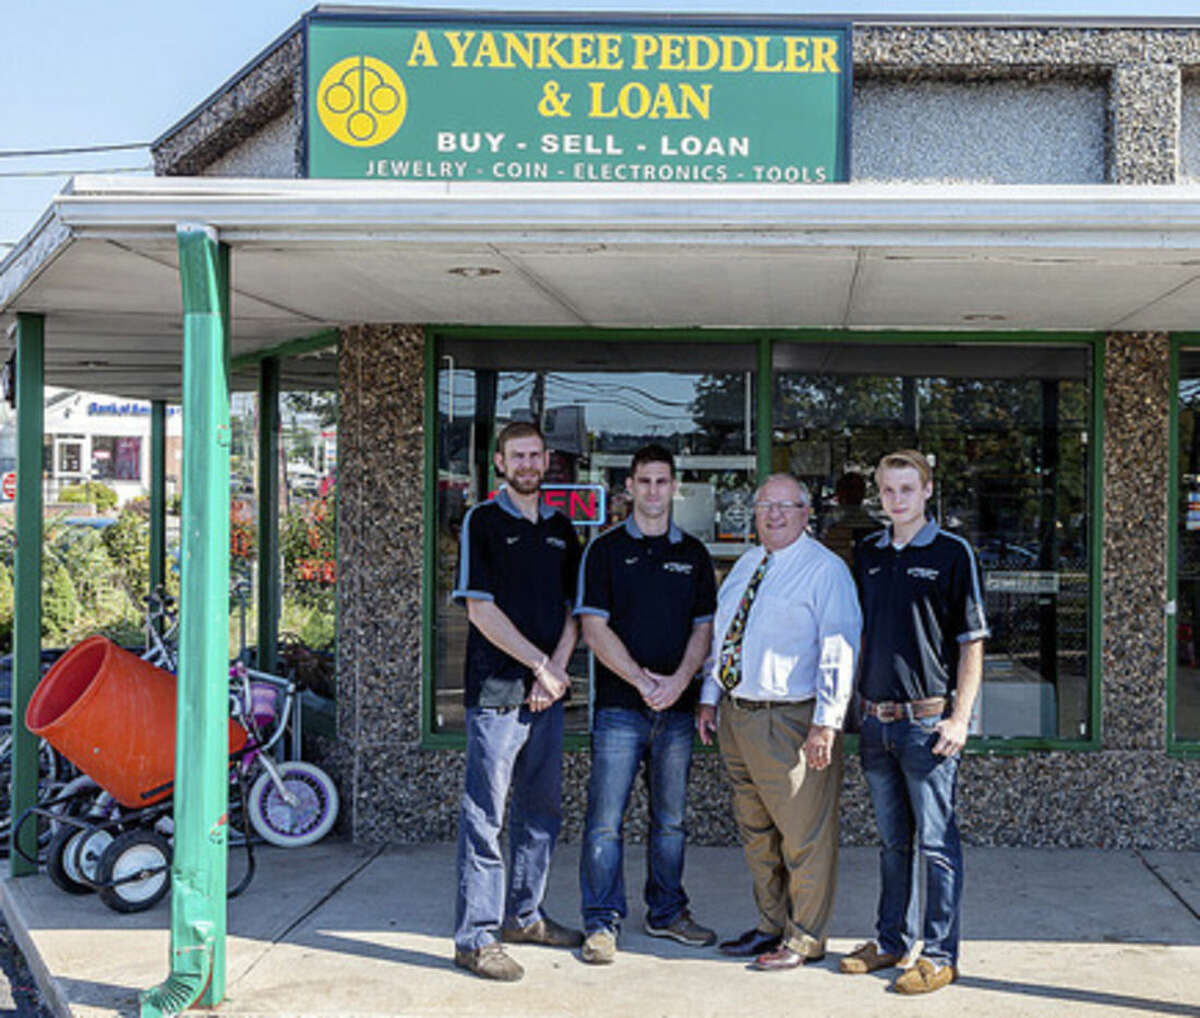 Contributed photo A Yankee Peddler & Loan employees (left to right) Peter Bafundo, Matt Luczak, Alexander DeLucia and Josh Bryant.